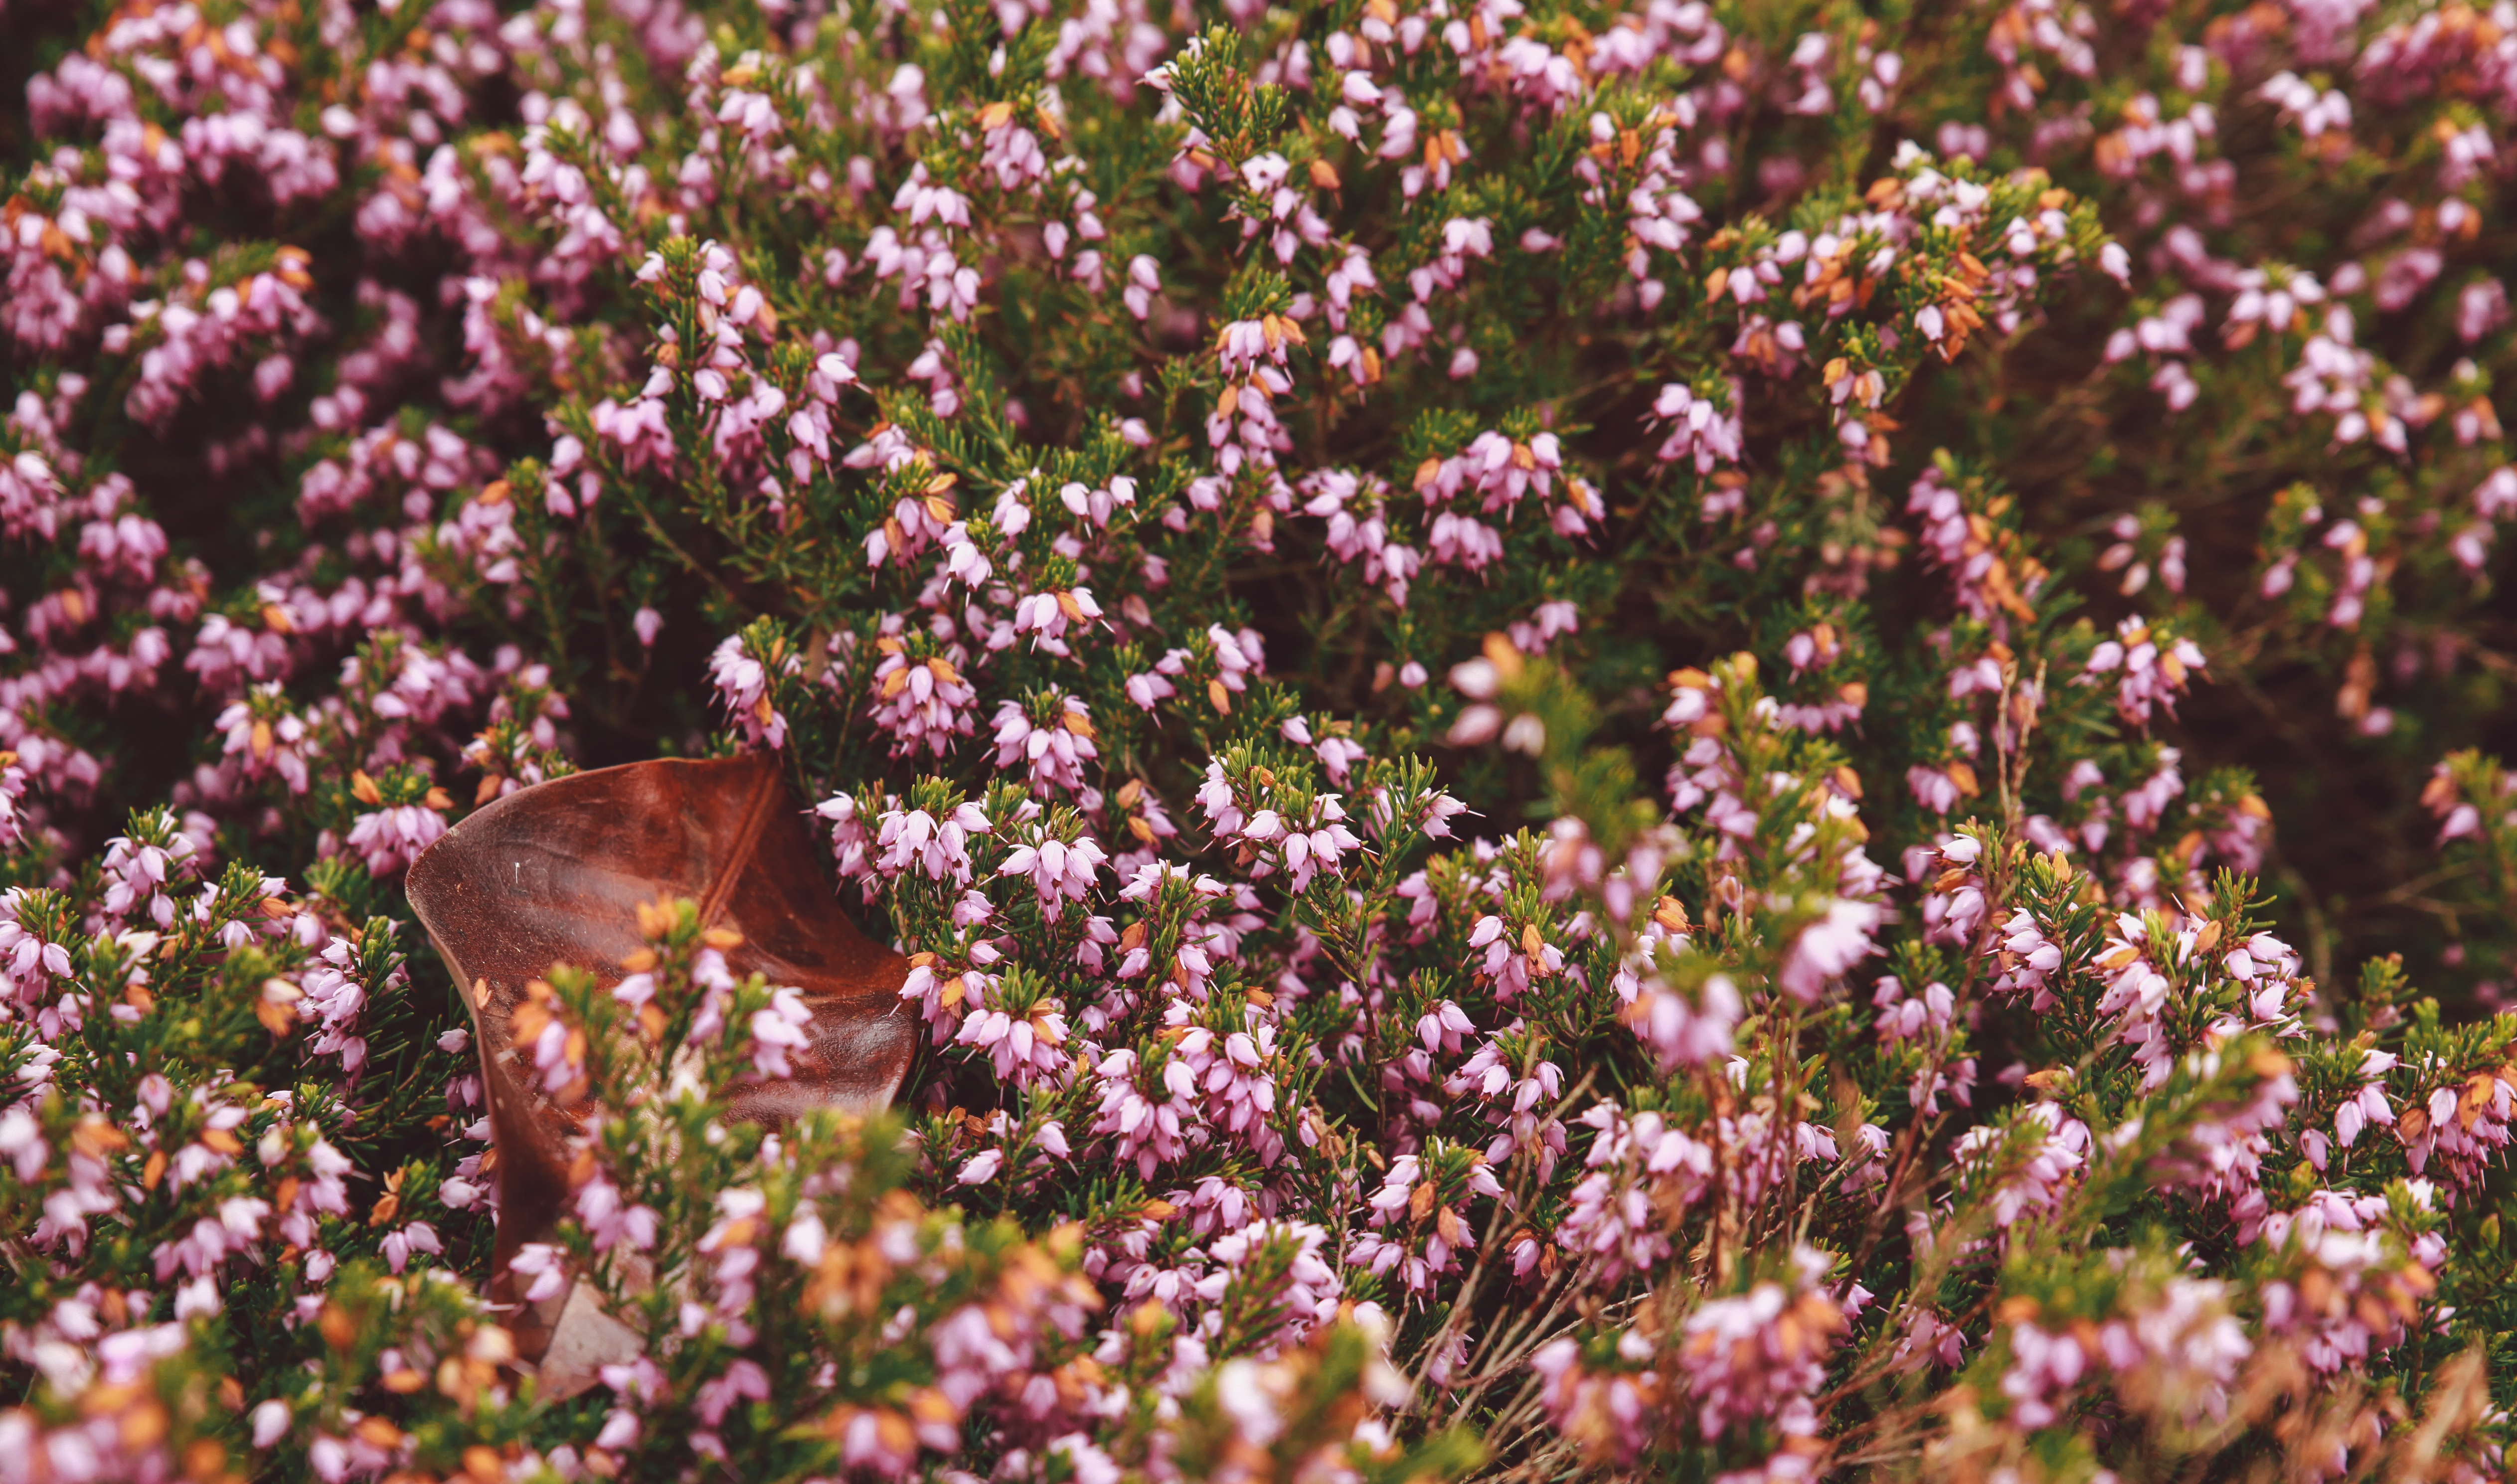 114962 download wallpaper Flowers, Garden, Flower Bed, Flowerbed, Autumn screensavers and pictures for free